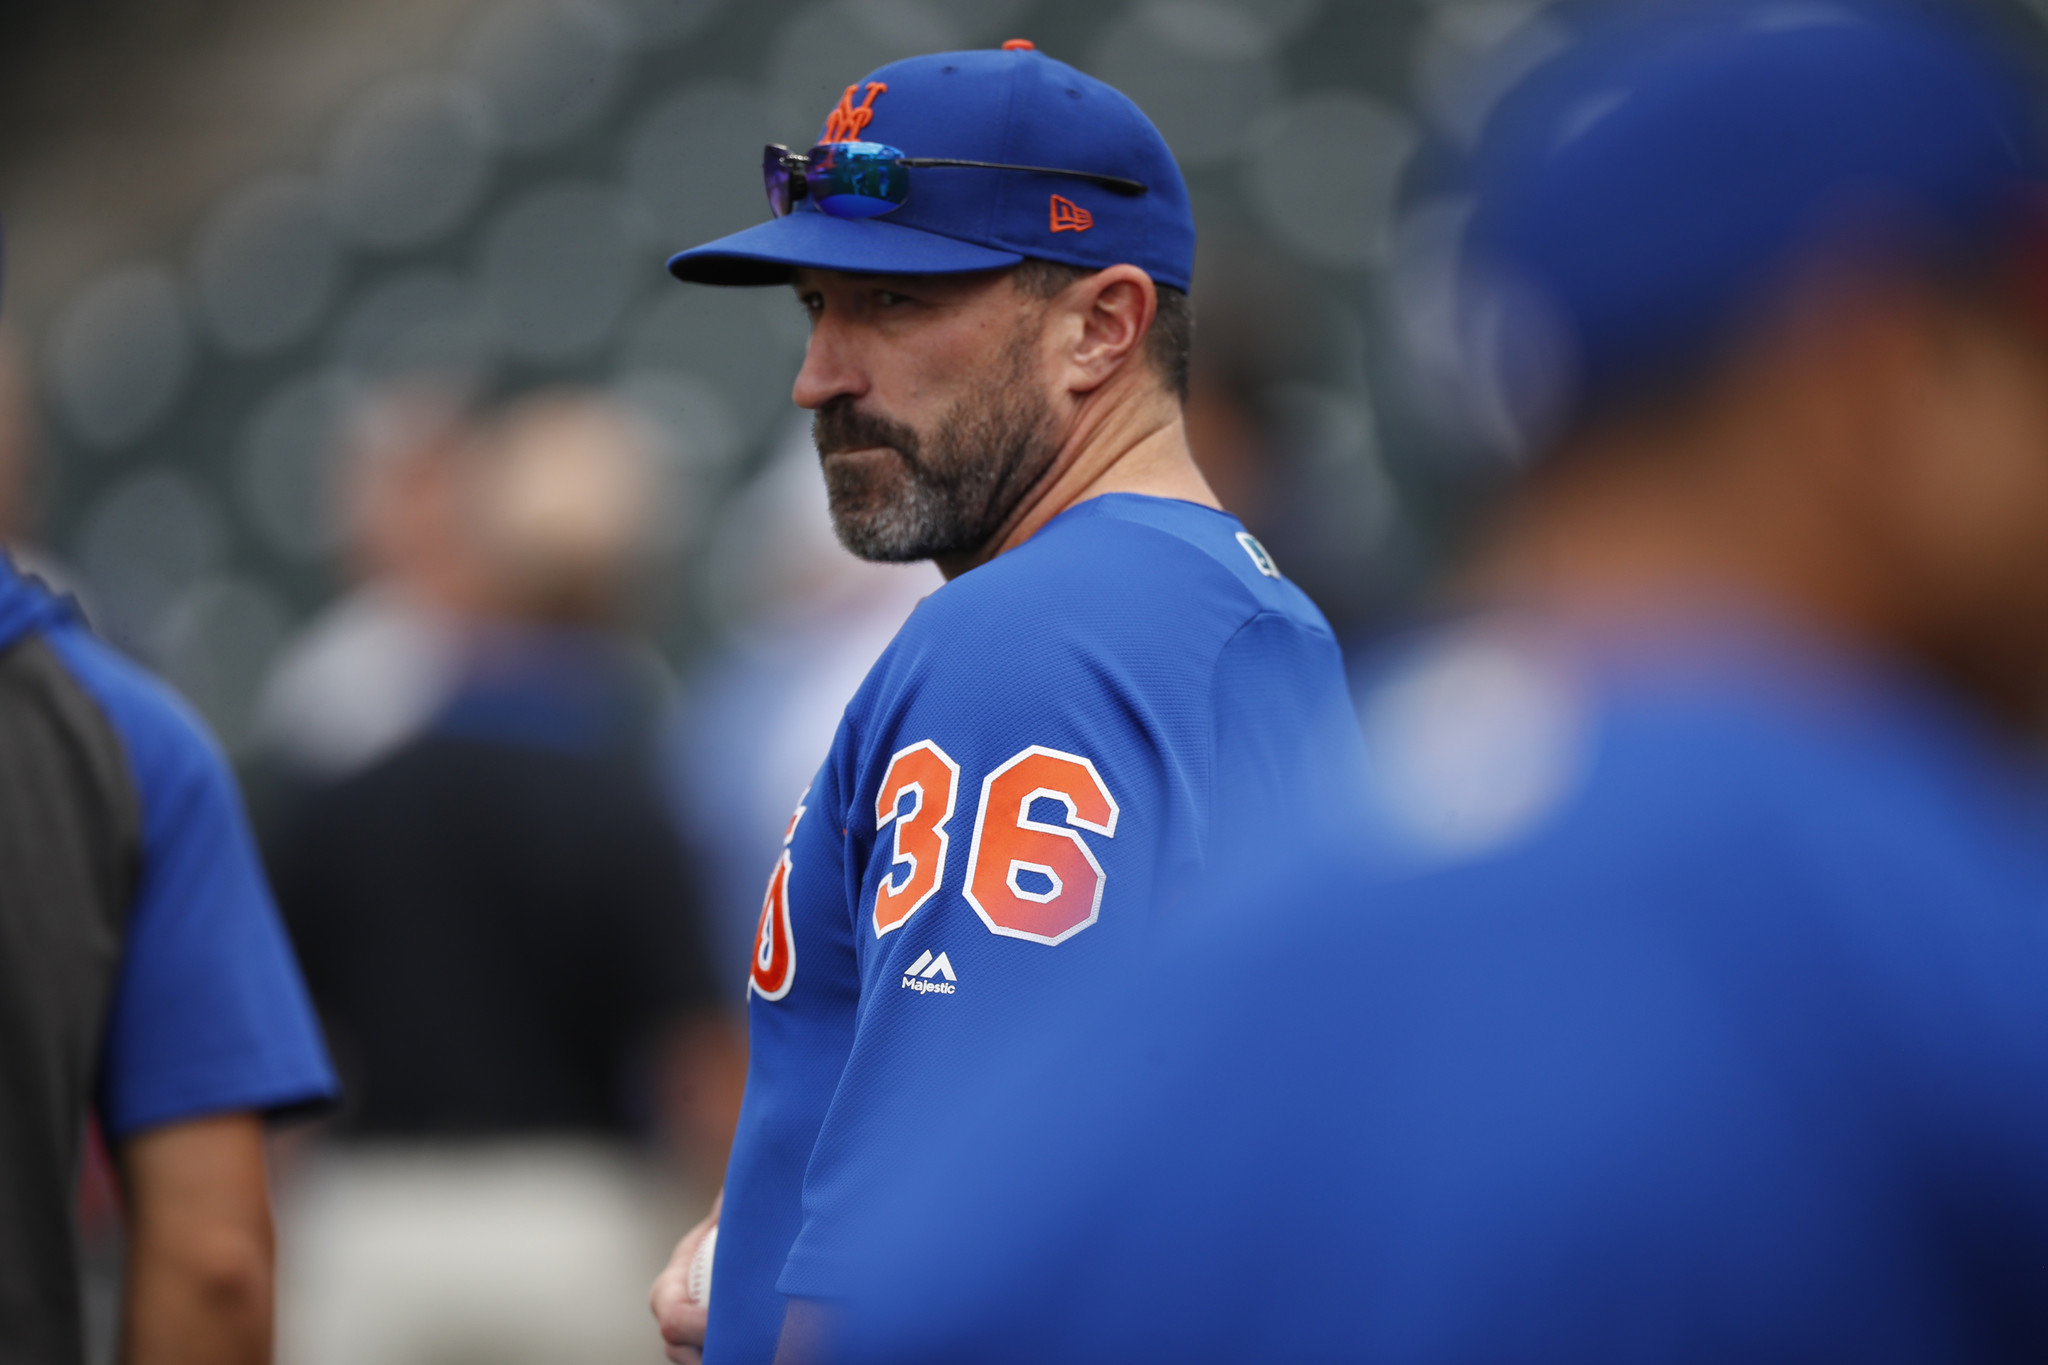 Mickey Callaway reflects on his season and future as Mets manager